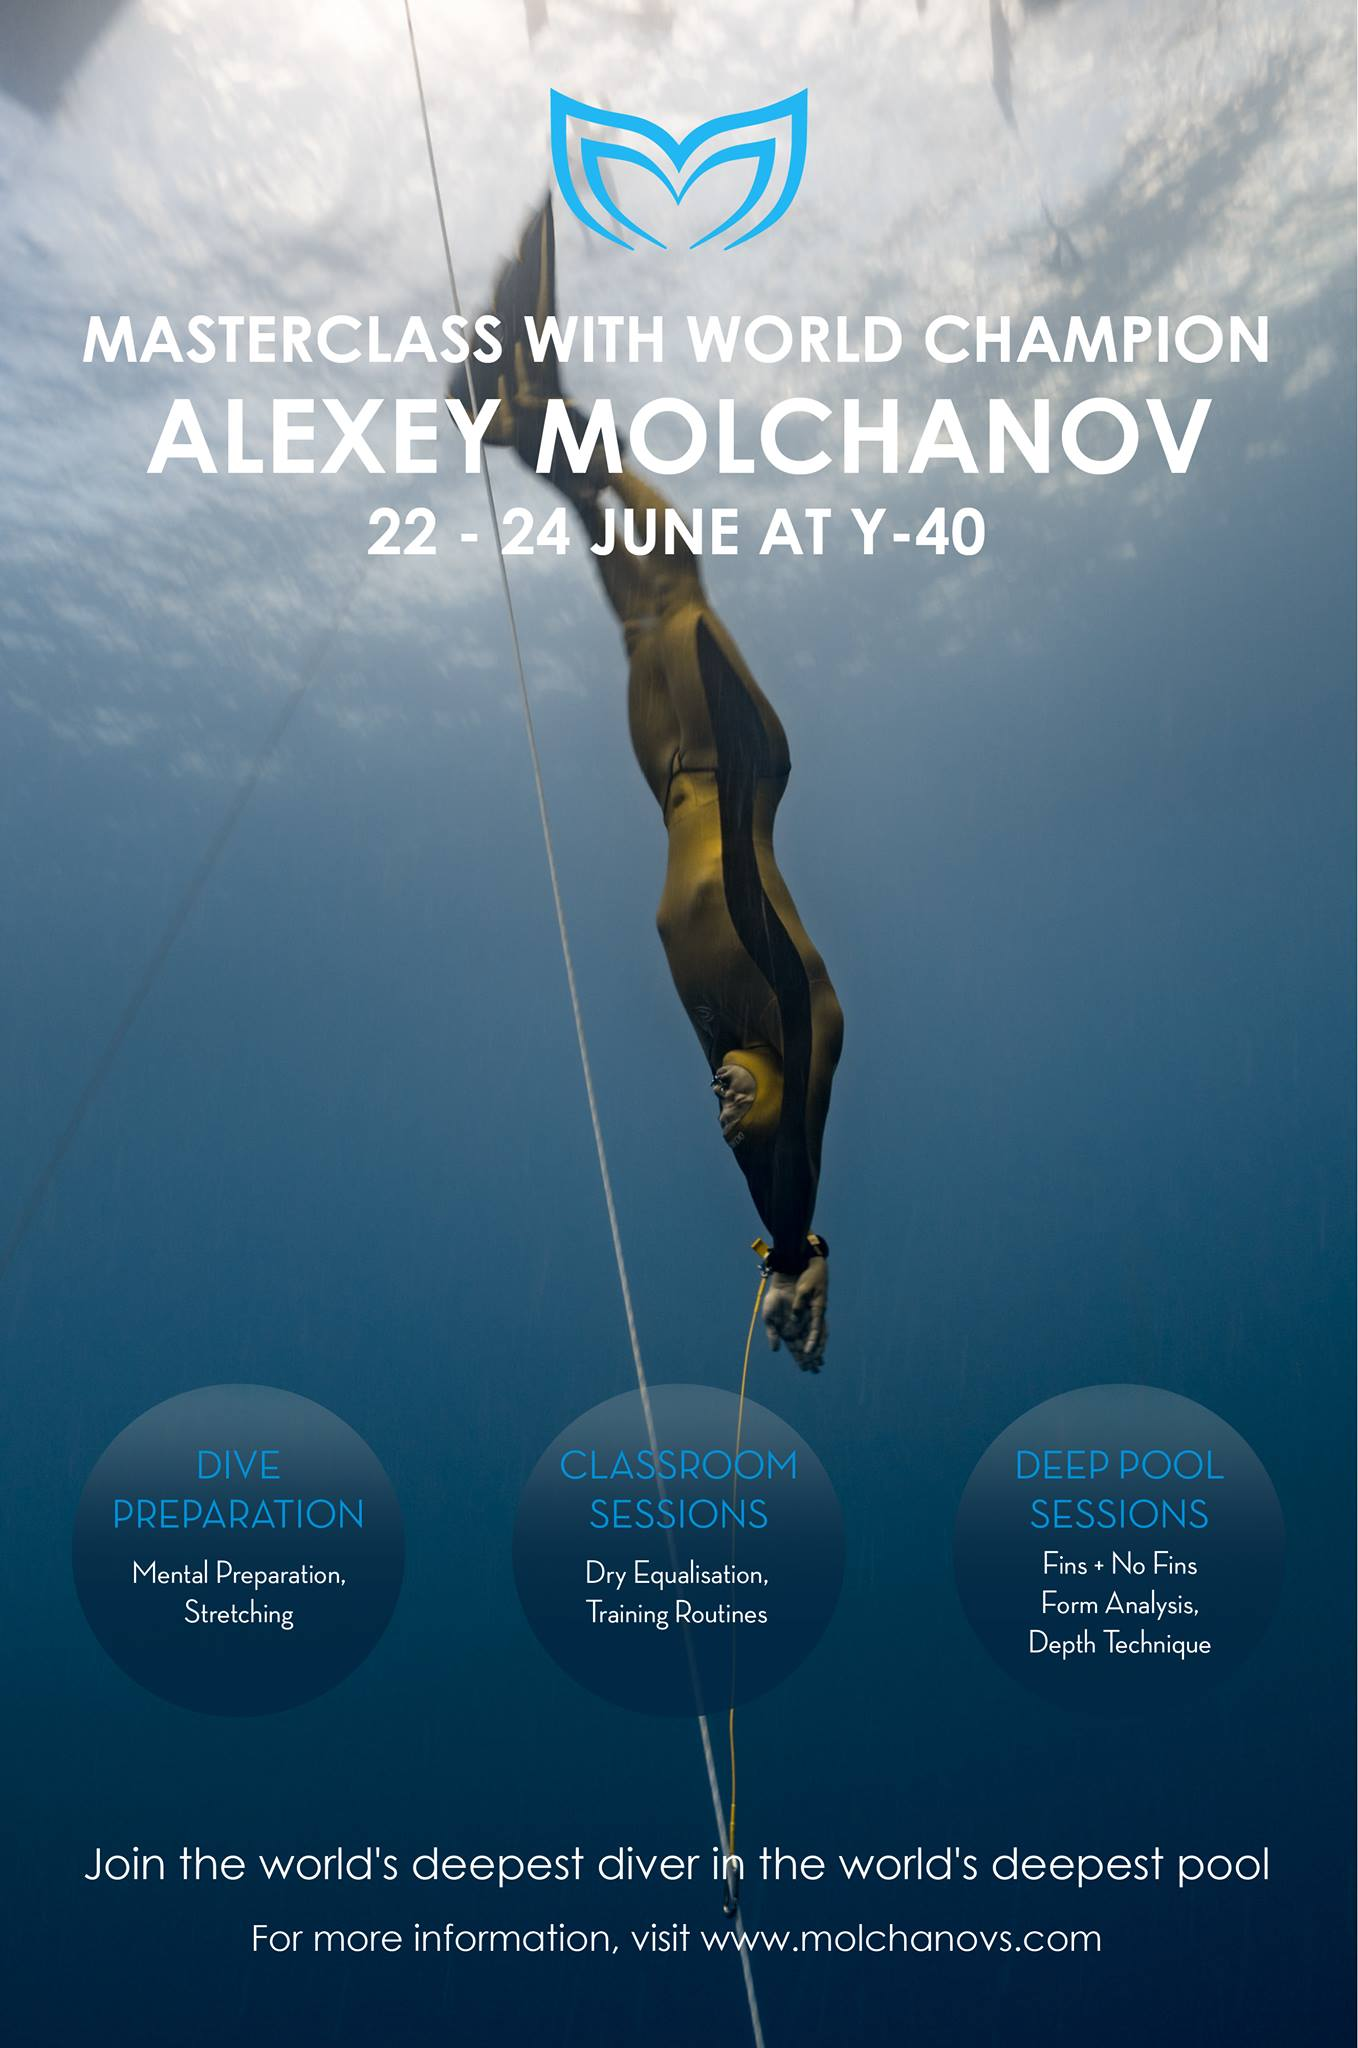 Alexey Molchanov? To Hold Freediving Masterclass At Y-40 Pool In Italy